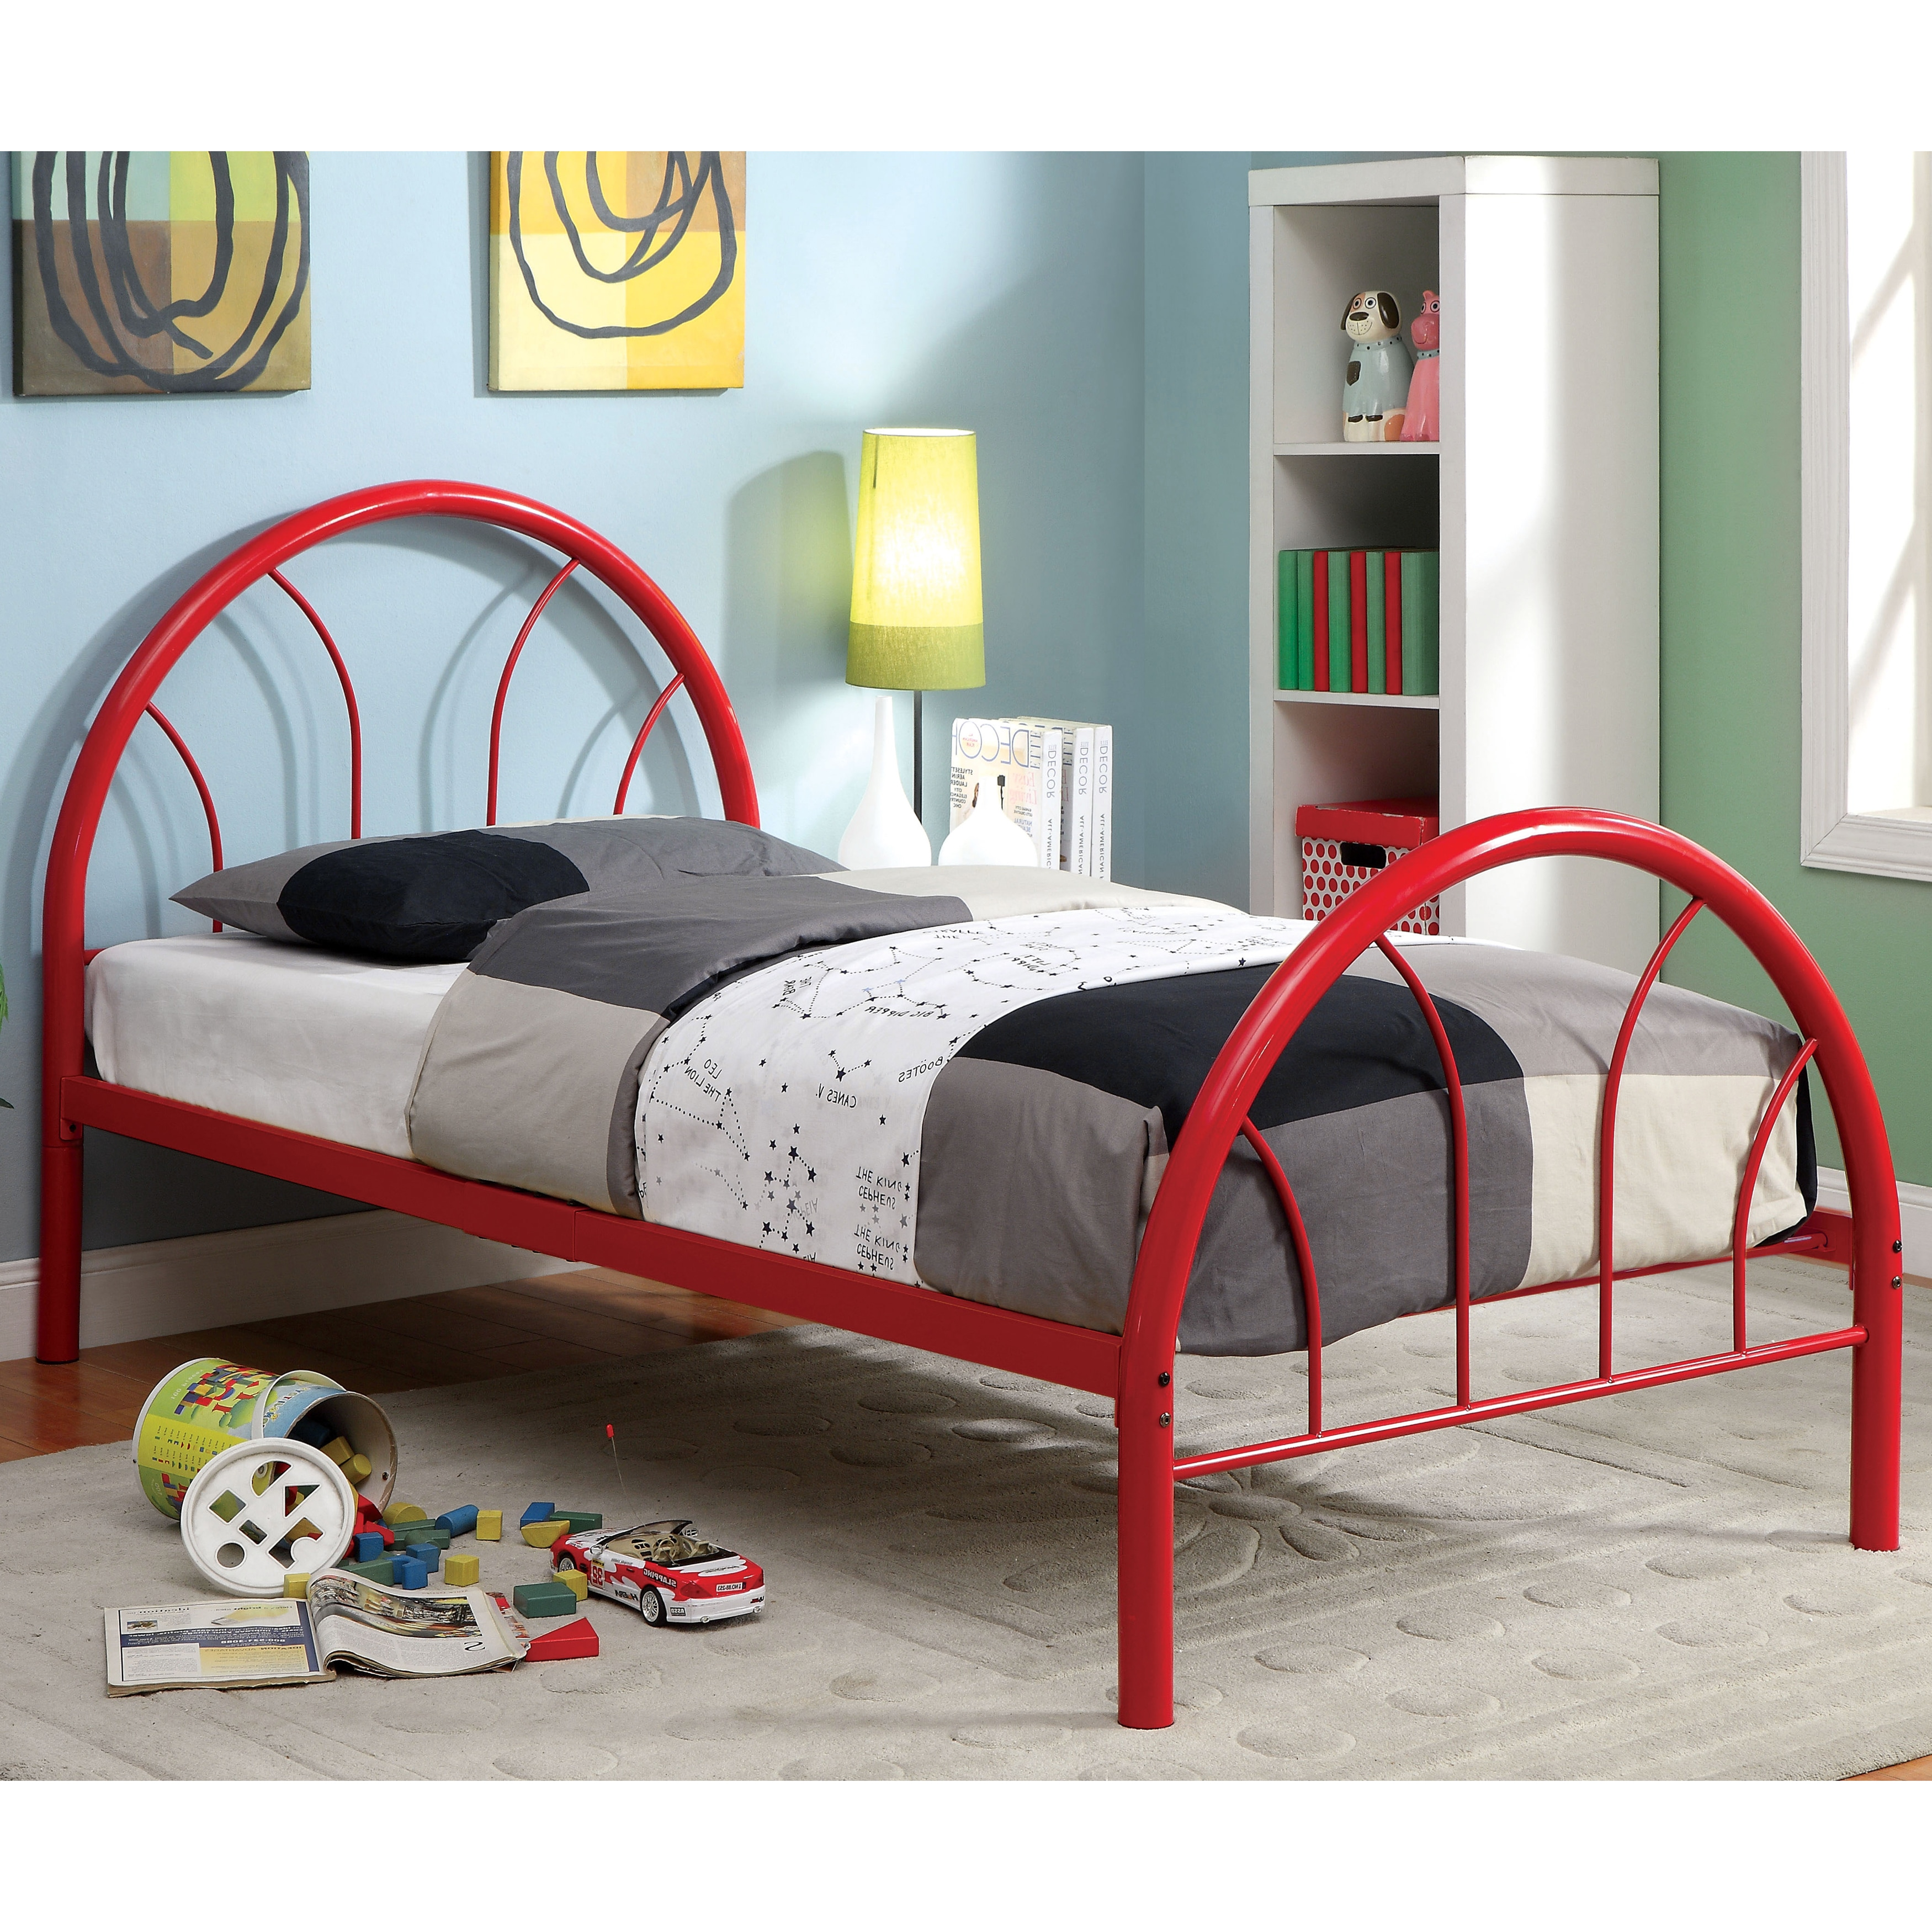 Furniture of America Linden Double Arch Metal Full Bed (Red)